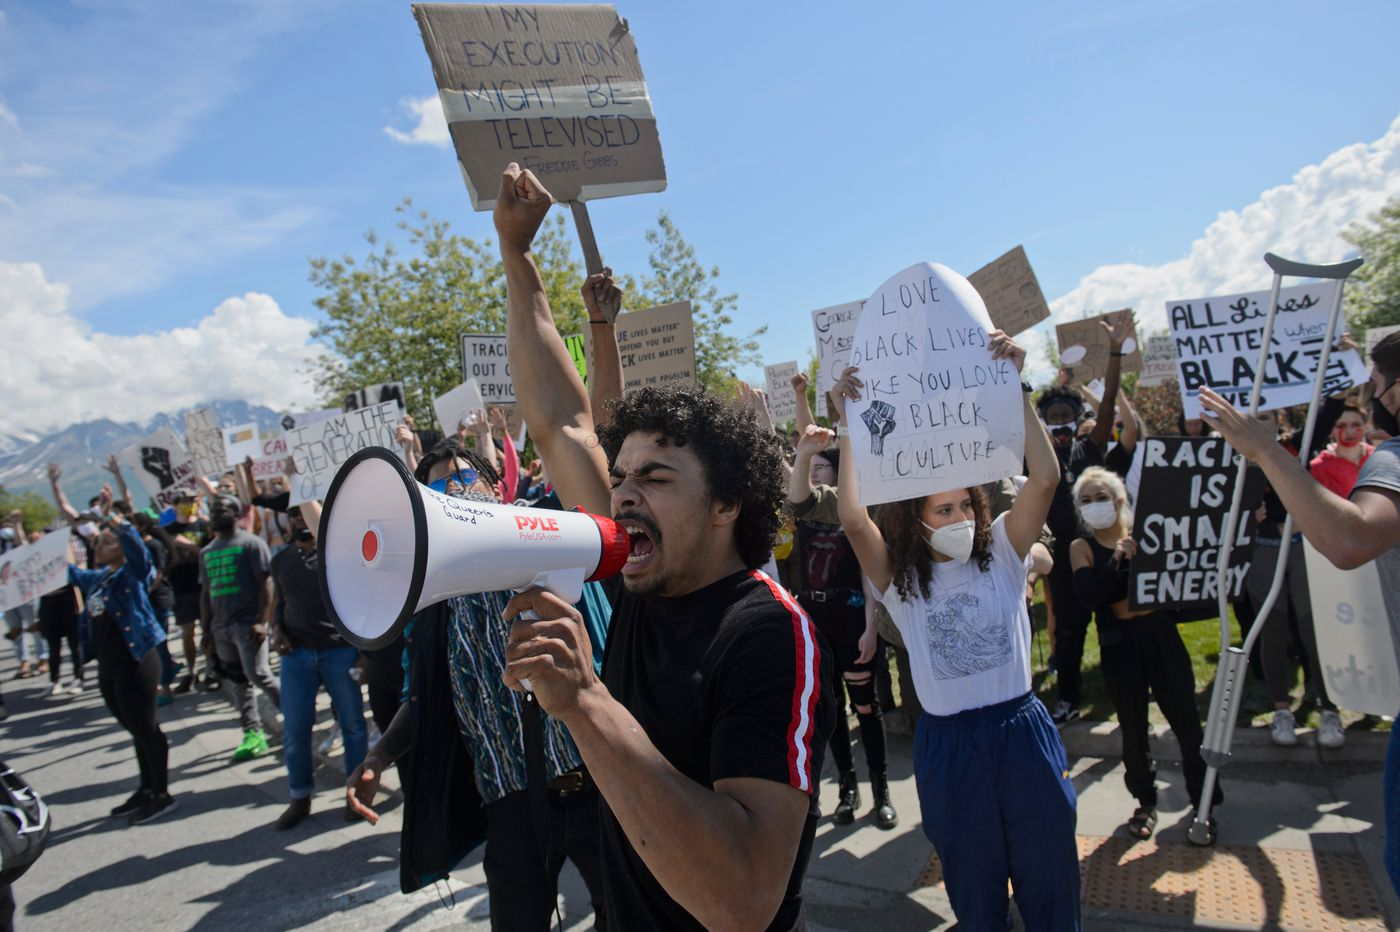 Justin Brotherwood leads a chant. A large crowd gathered and marched through Palmer to protest racism and police brutality on Saturday, June 6, 2020. (Marc Lester / ADN)